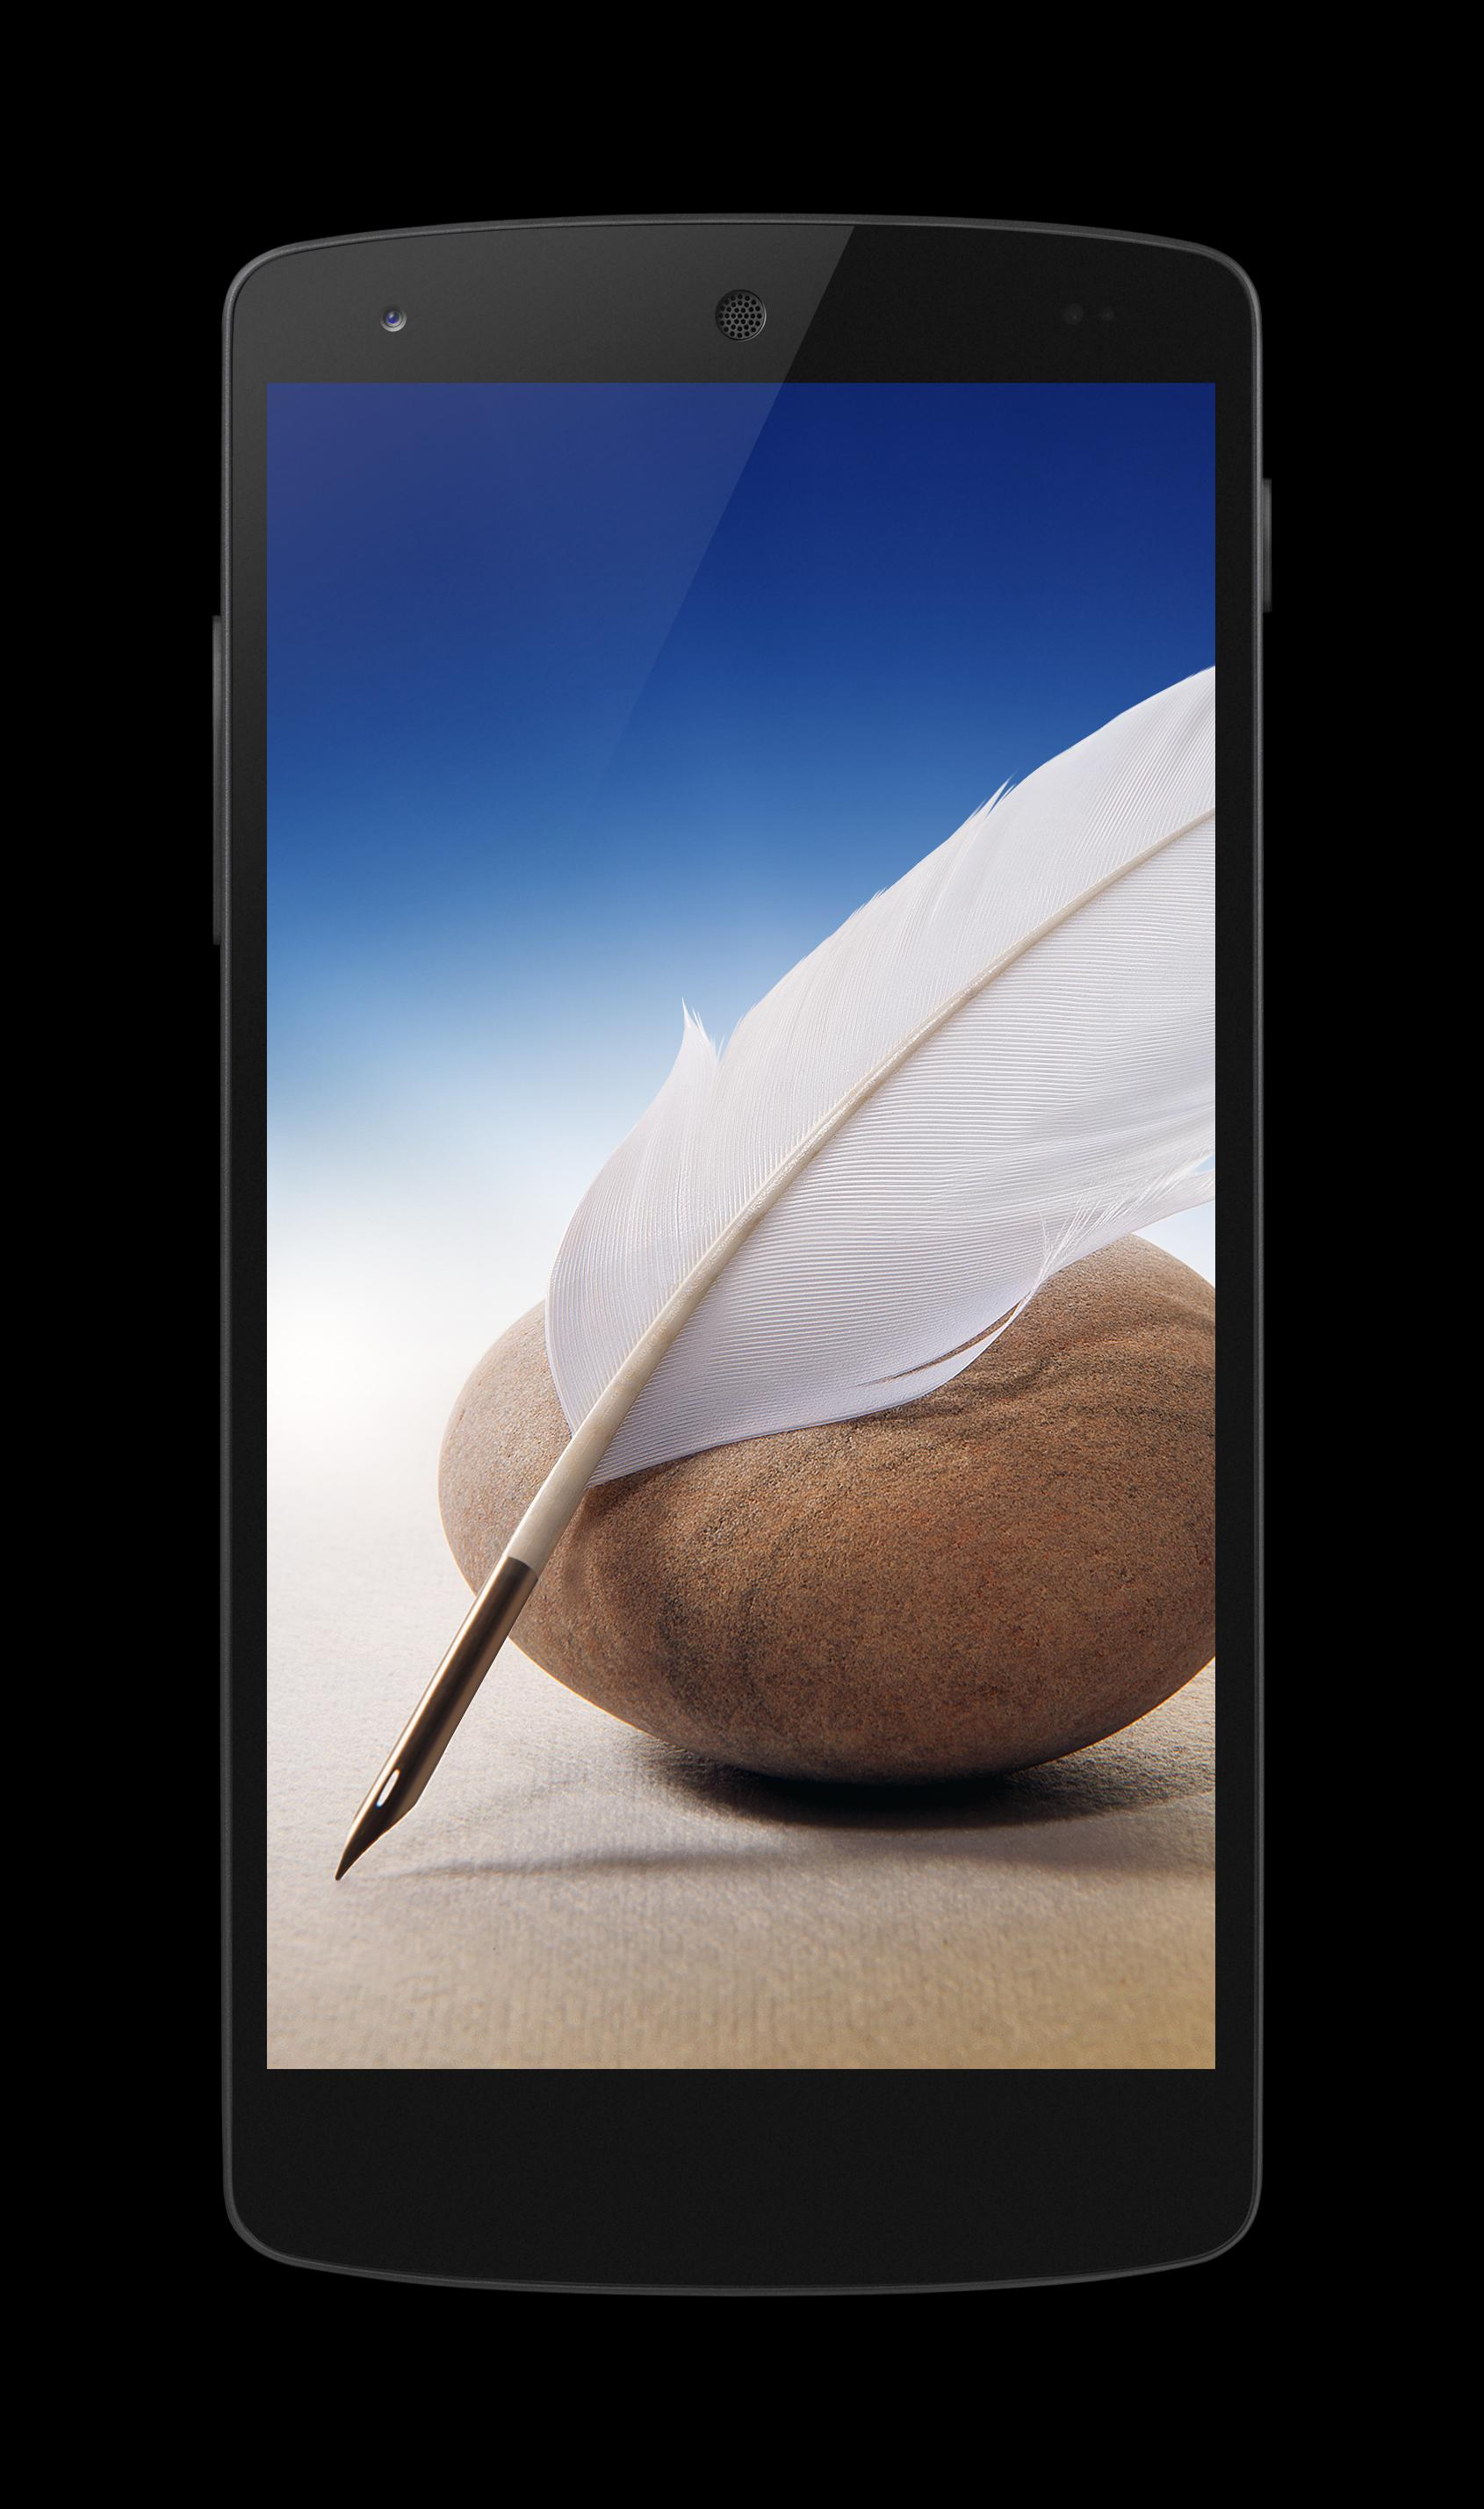 stock galaxy note 3 wallpapers for android apk download stock galaxy note 3 wallpapers for